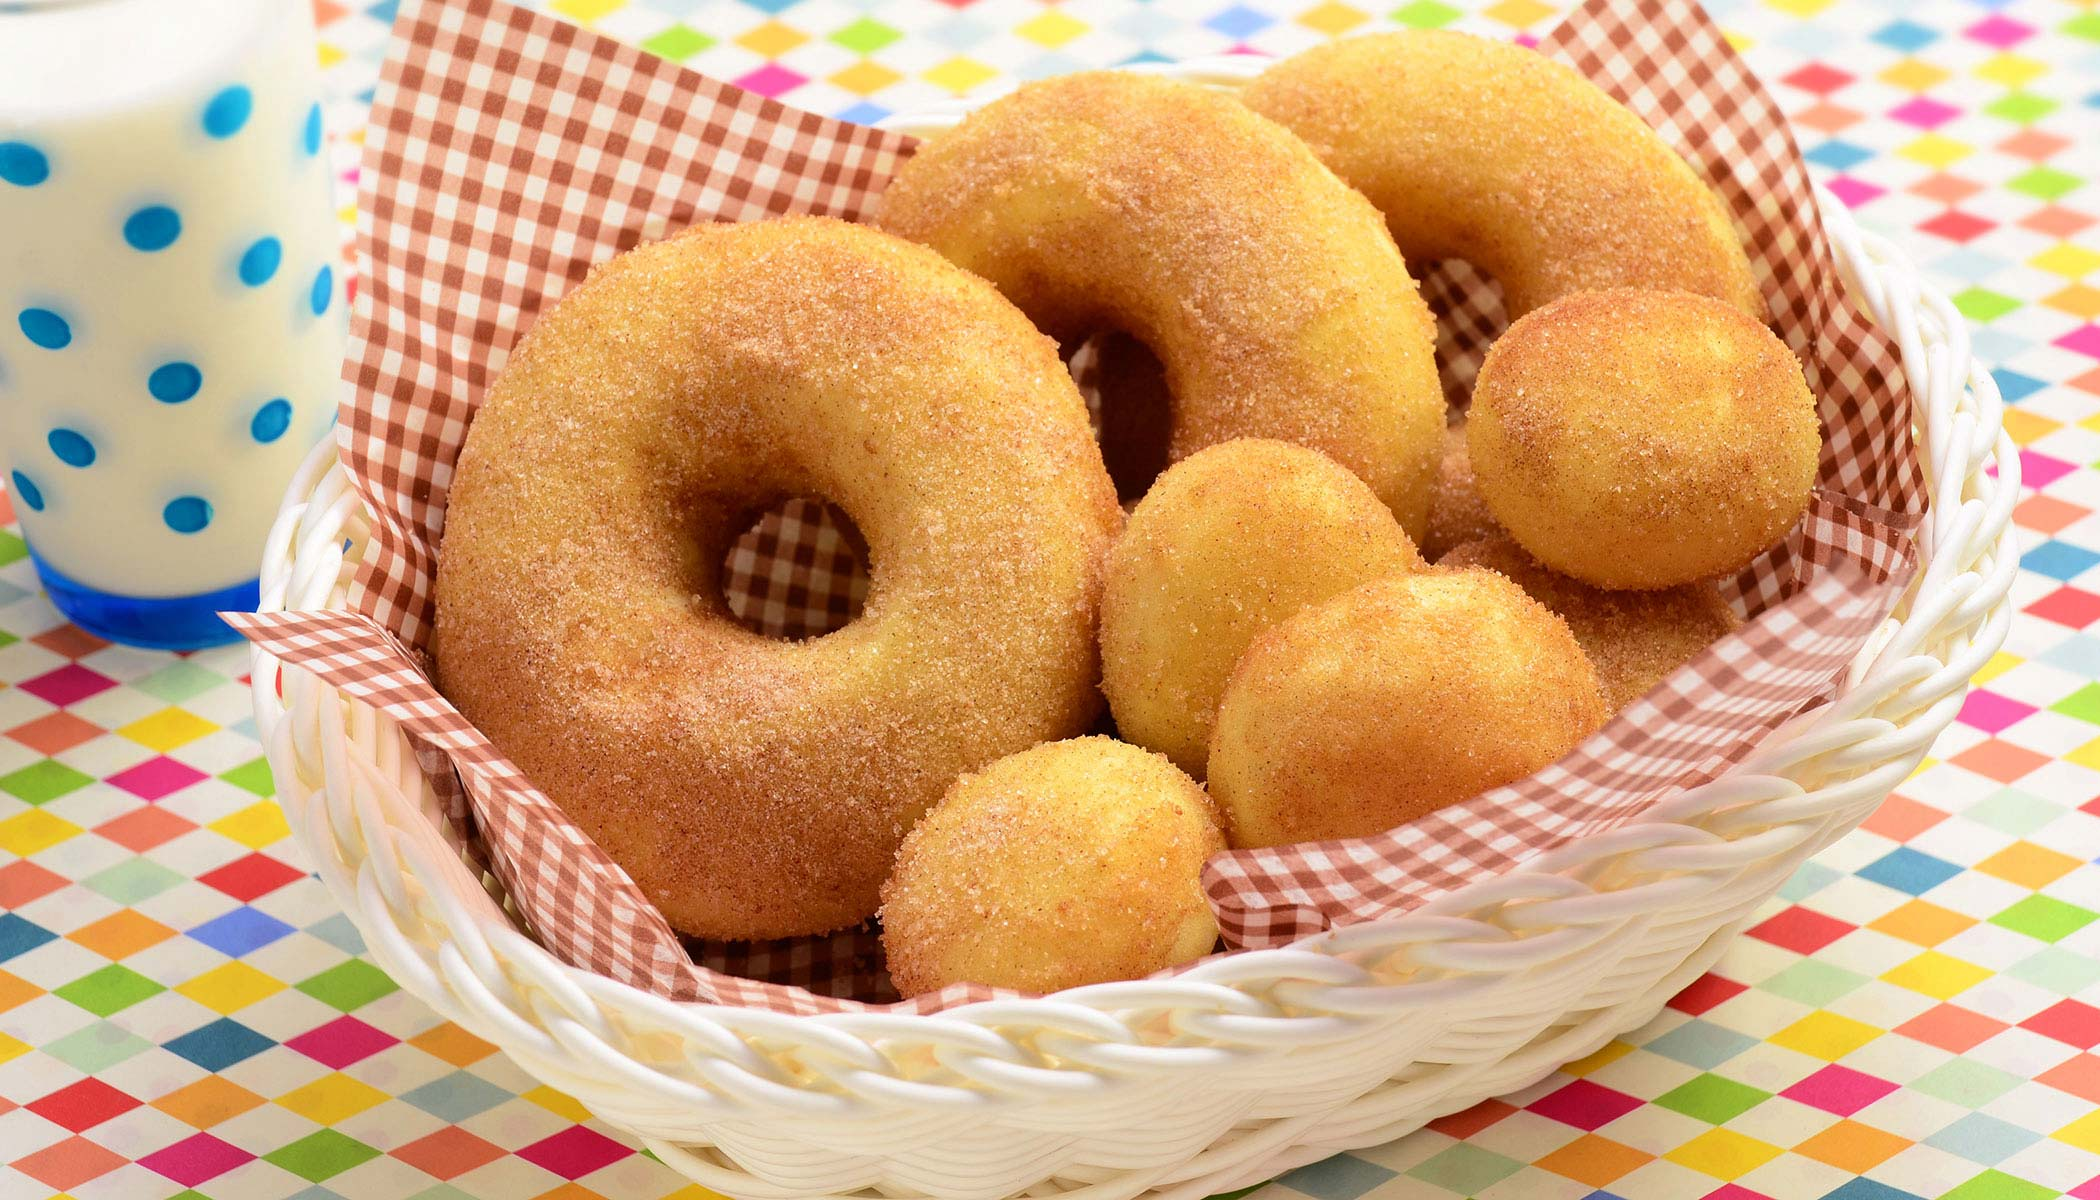 Donuts Baked, Not Fried